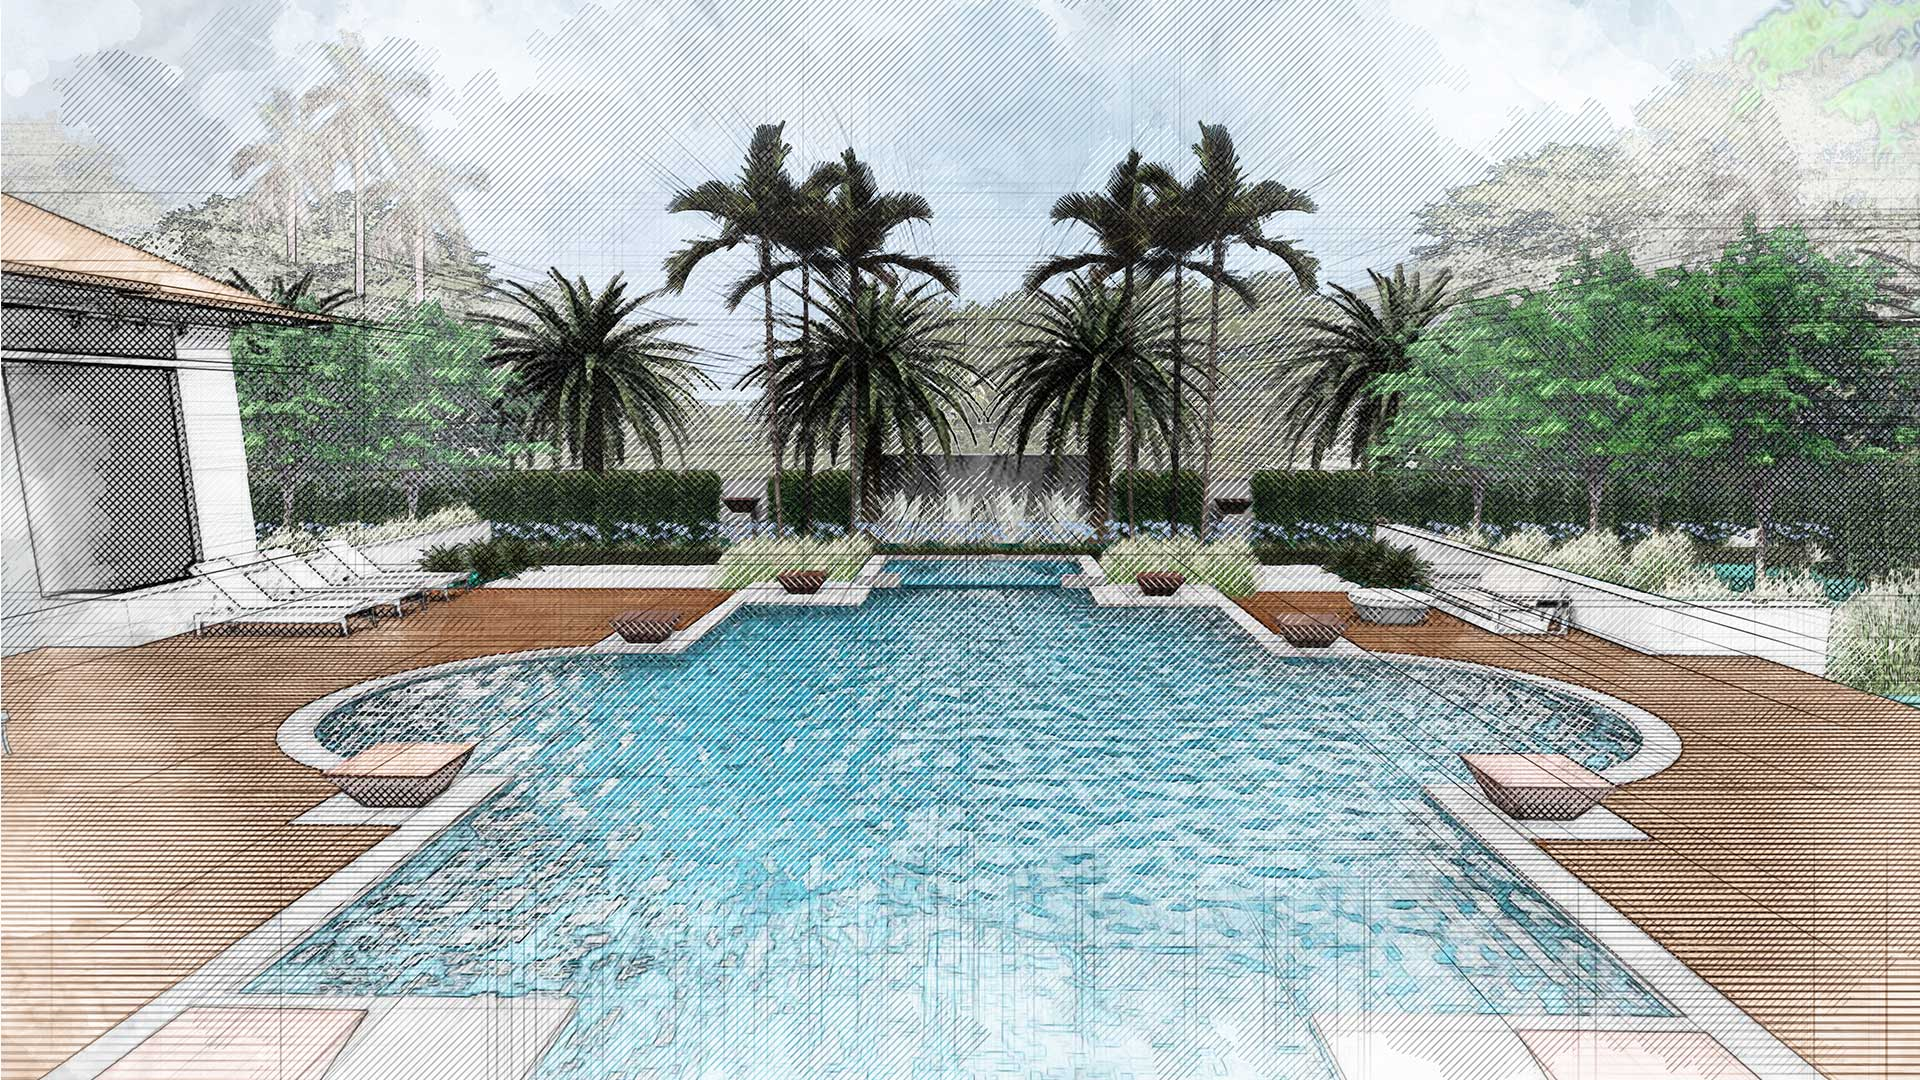 sketching of landscaping design showing a pool with deck and palmtrees